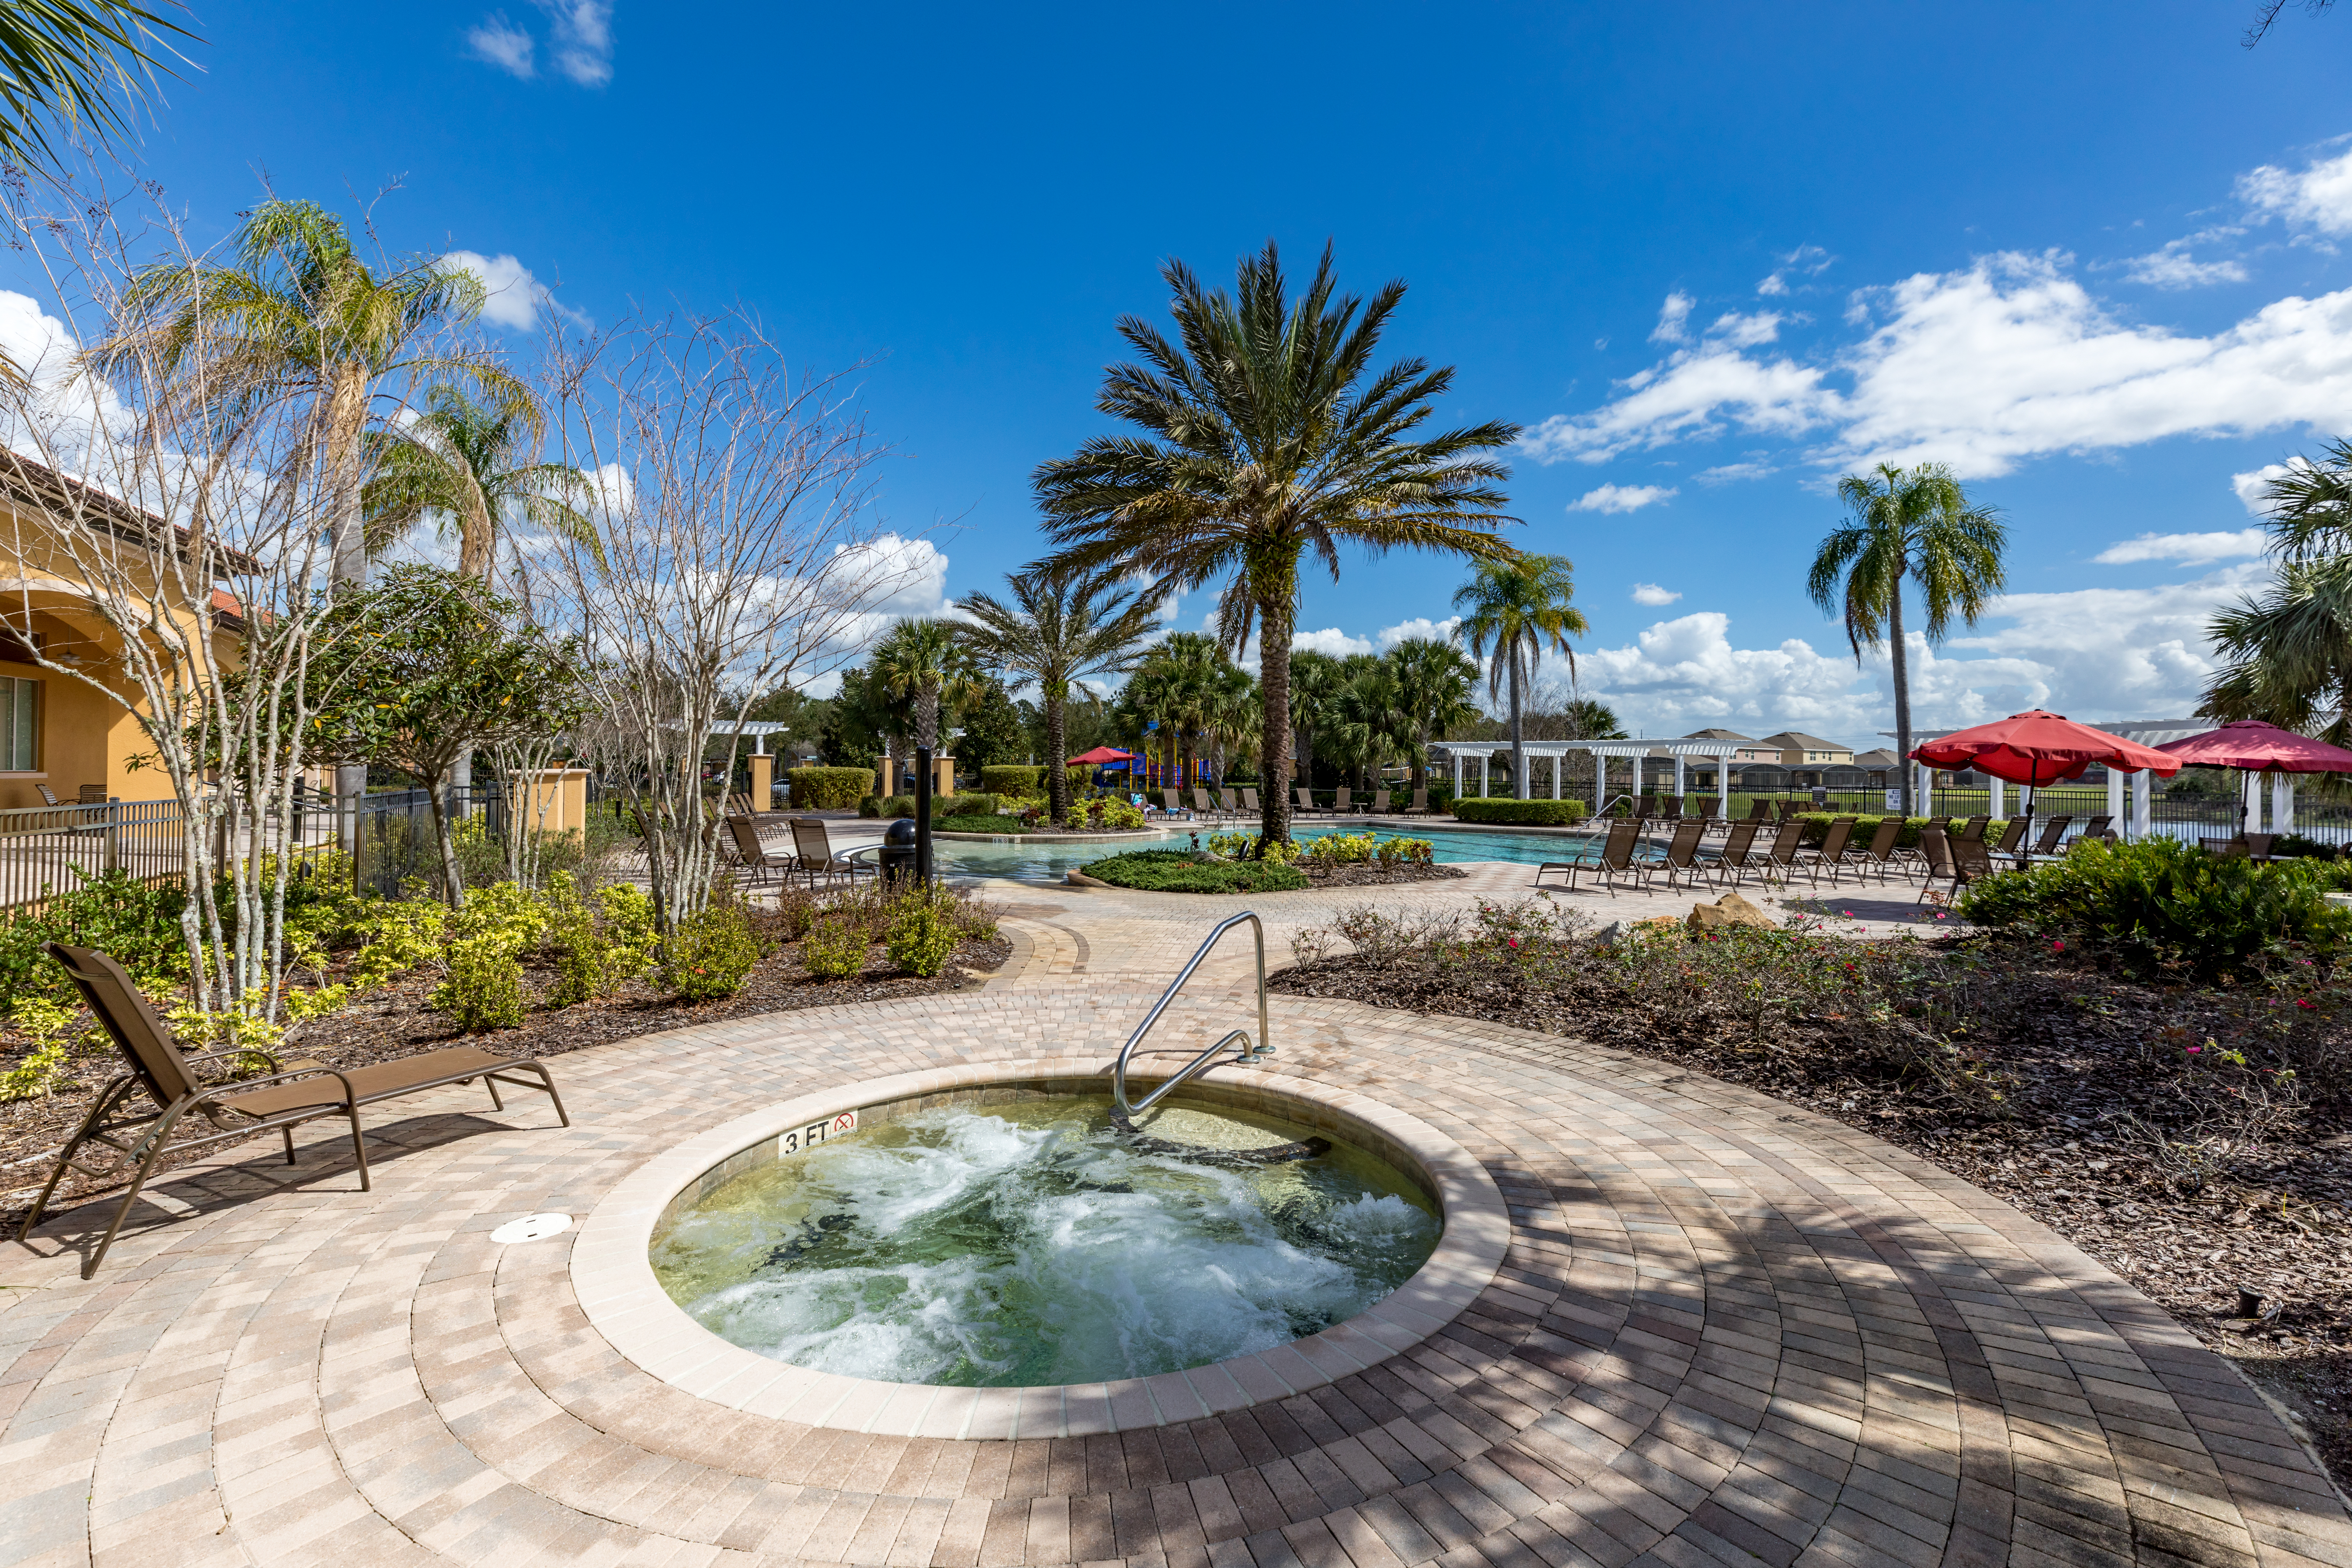 Watersong Resort/NW5984-146080